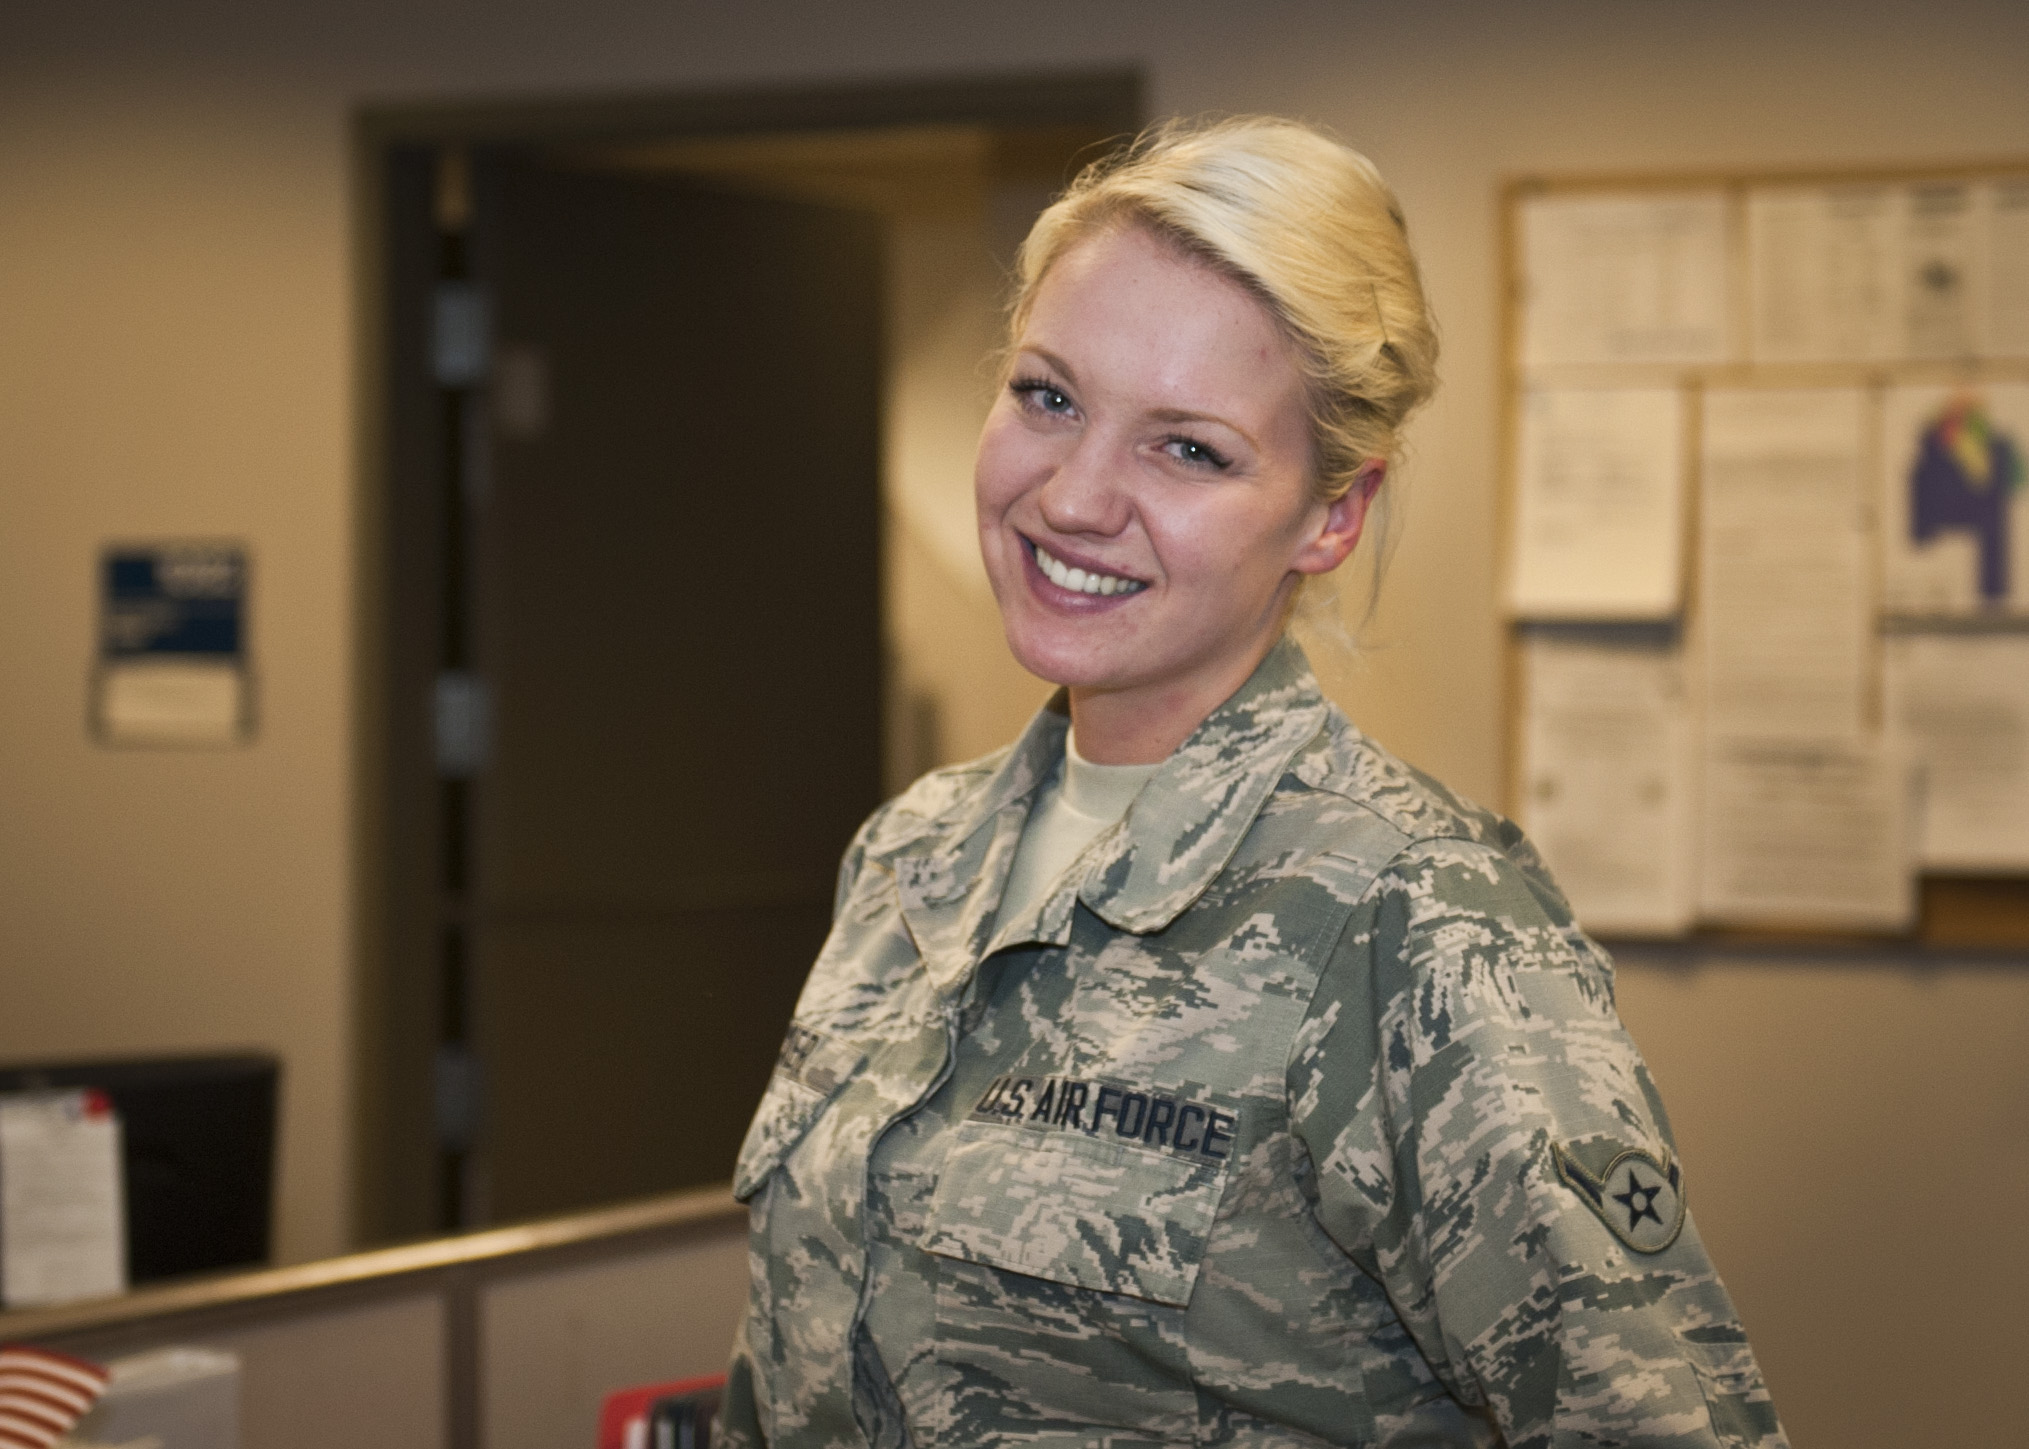 How to survive dating an airman